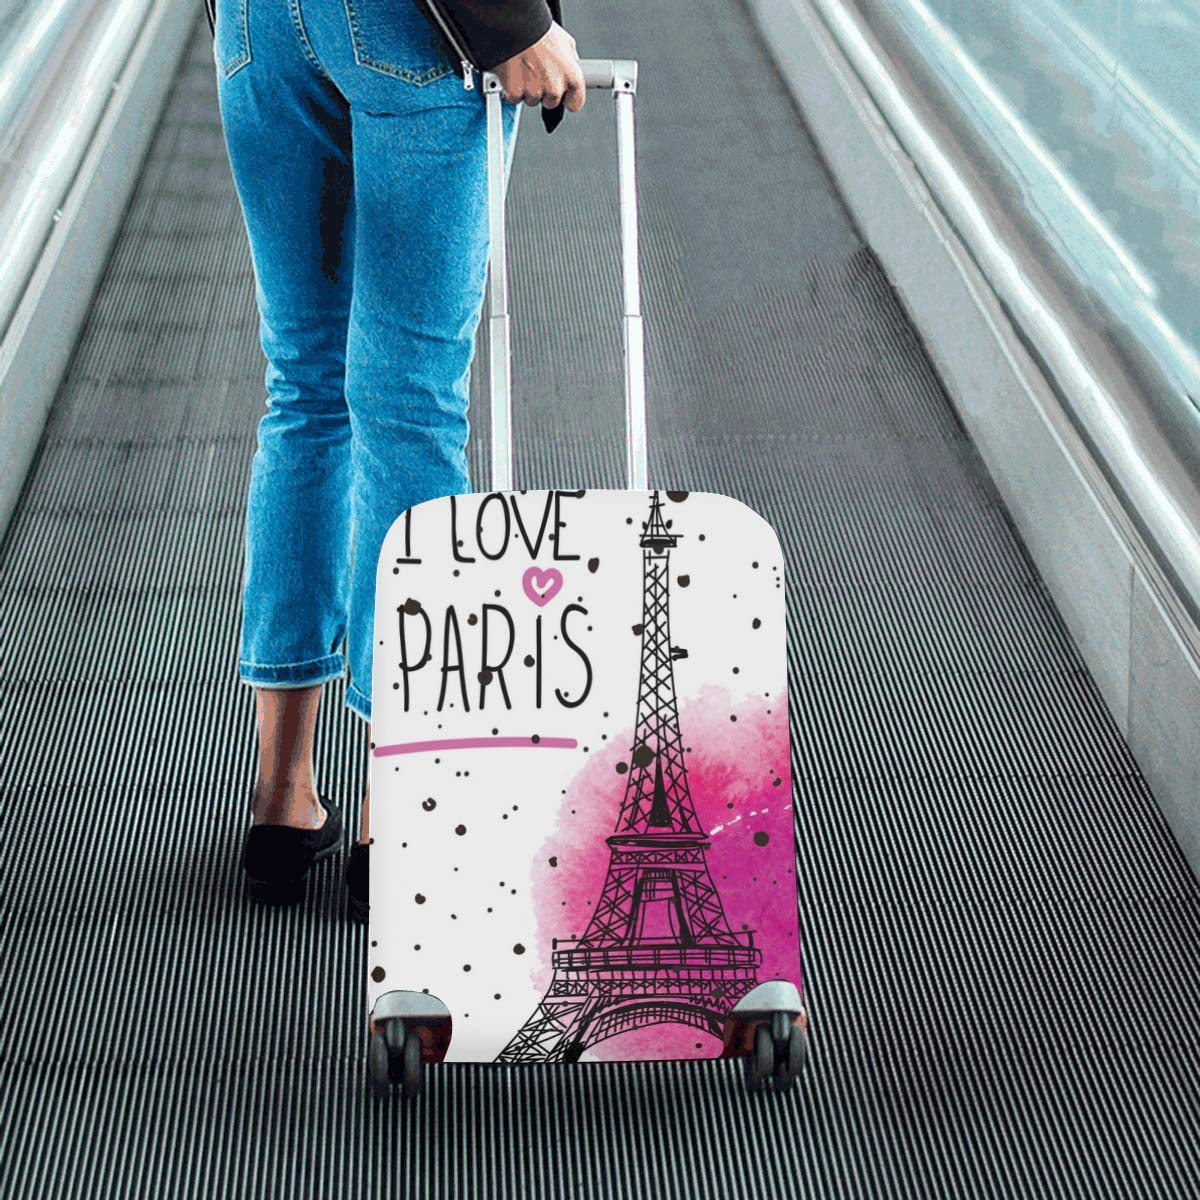 InterestPrint I Love Paris Eiffel Tower Travel Luggage Case Baggage Suitcase Cover Fits 18''-21'' Luggage by InterestPrint (Image #5)